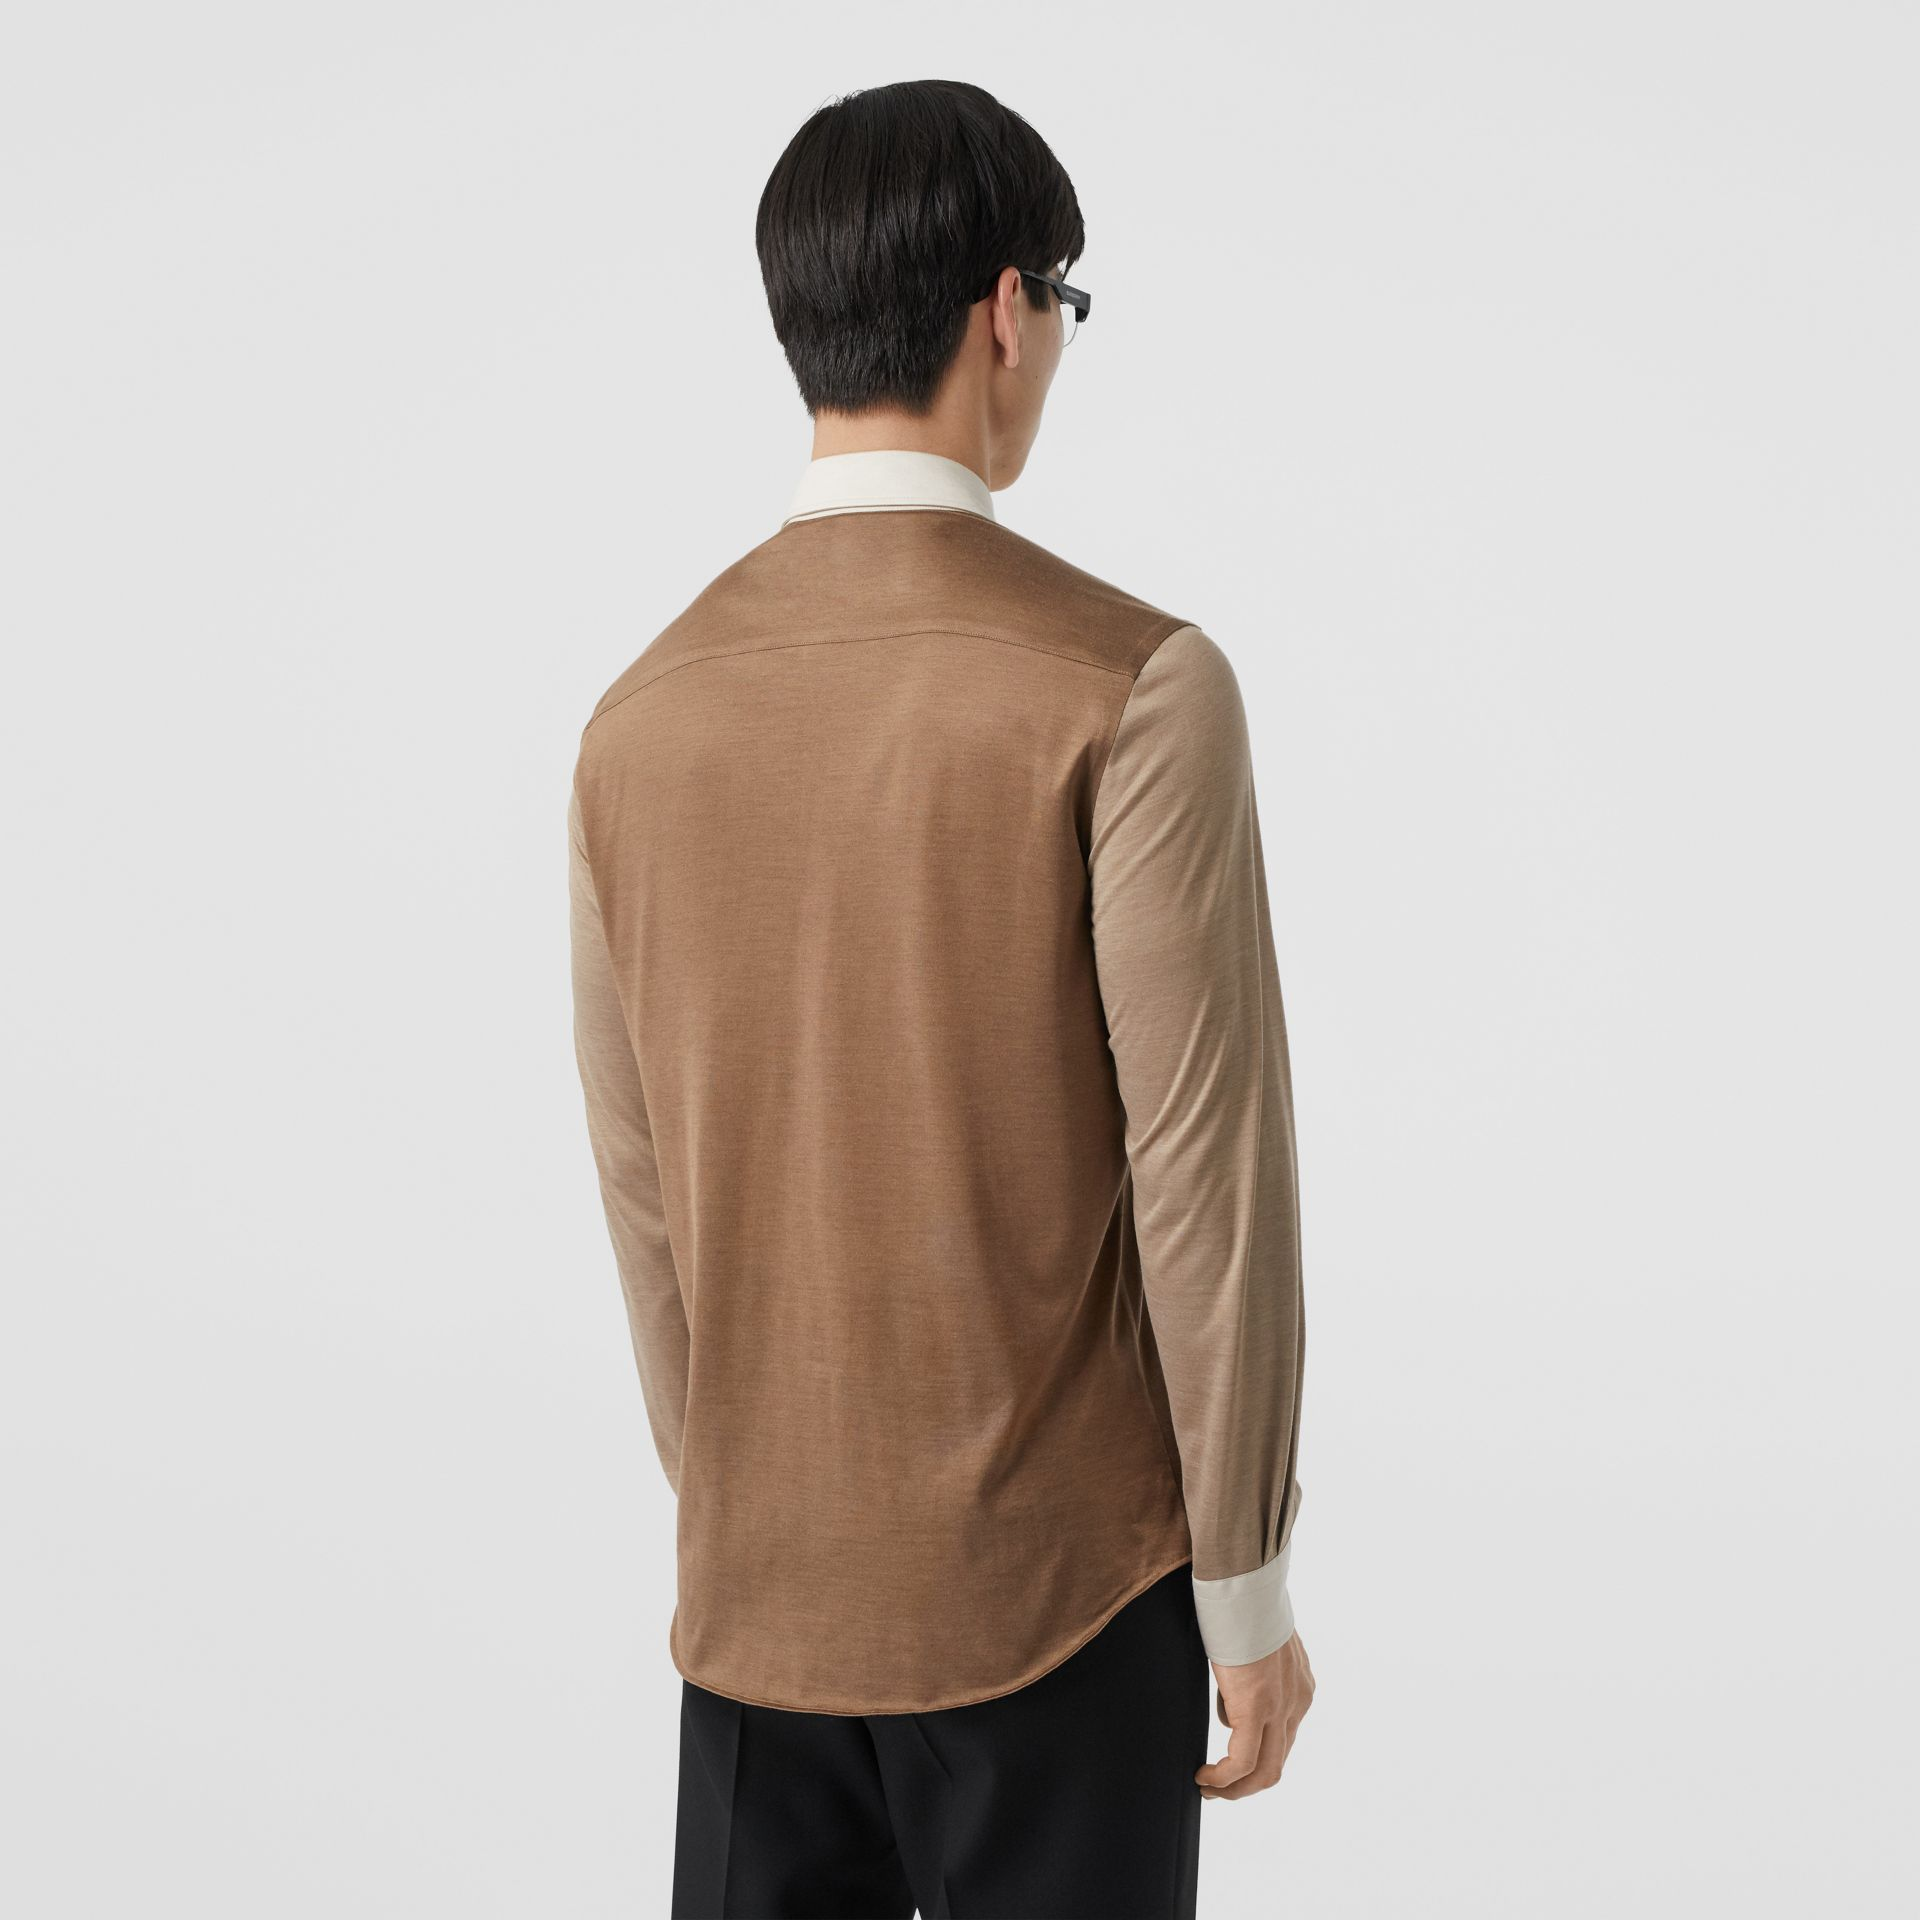 Classic Fit Panelled Silk and Merino Wool Shirt in Warm Camel - Men | Burberry Hong Kong S.A.R - gallery image 2